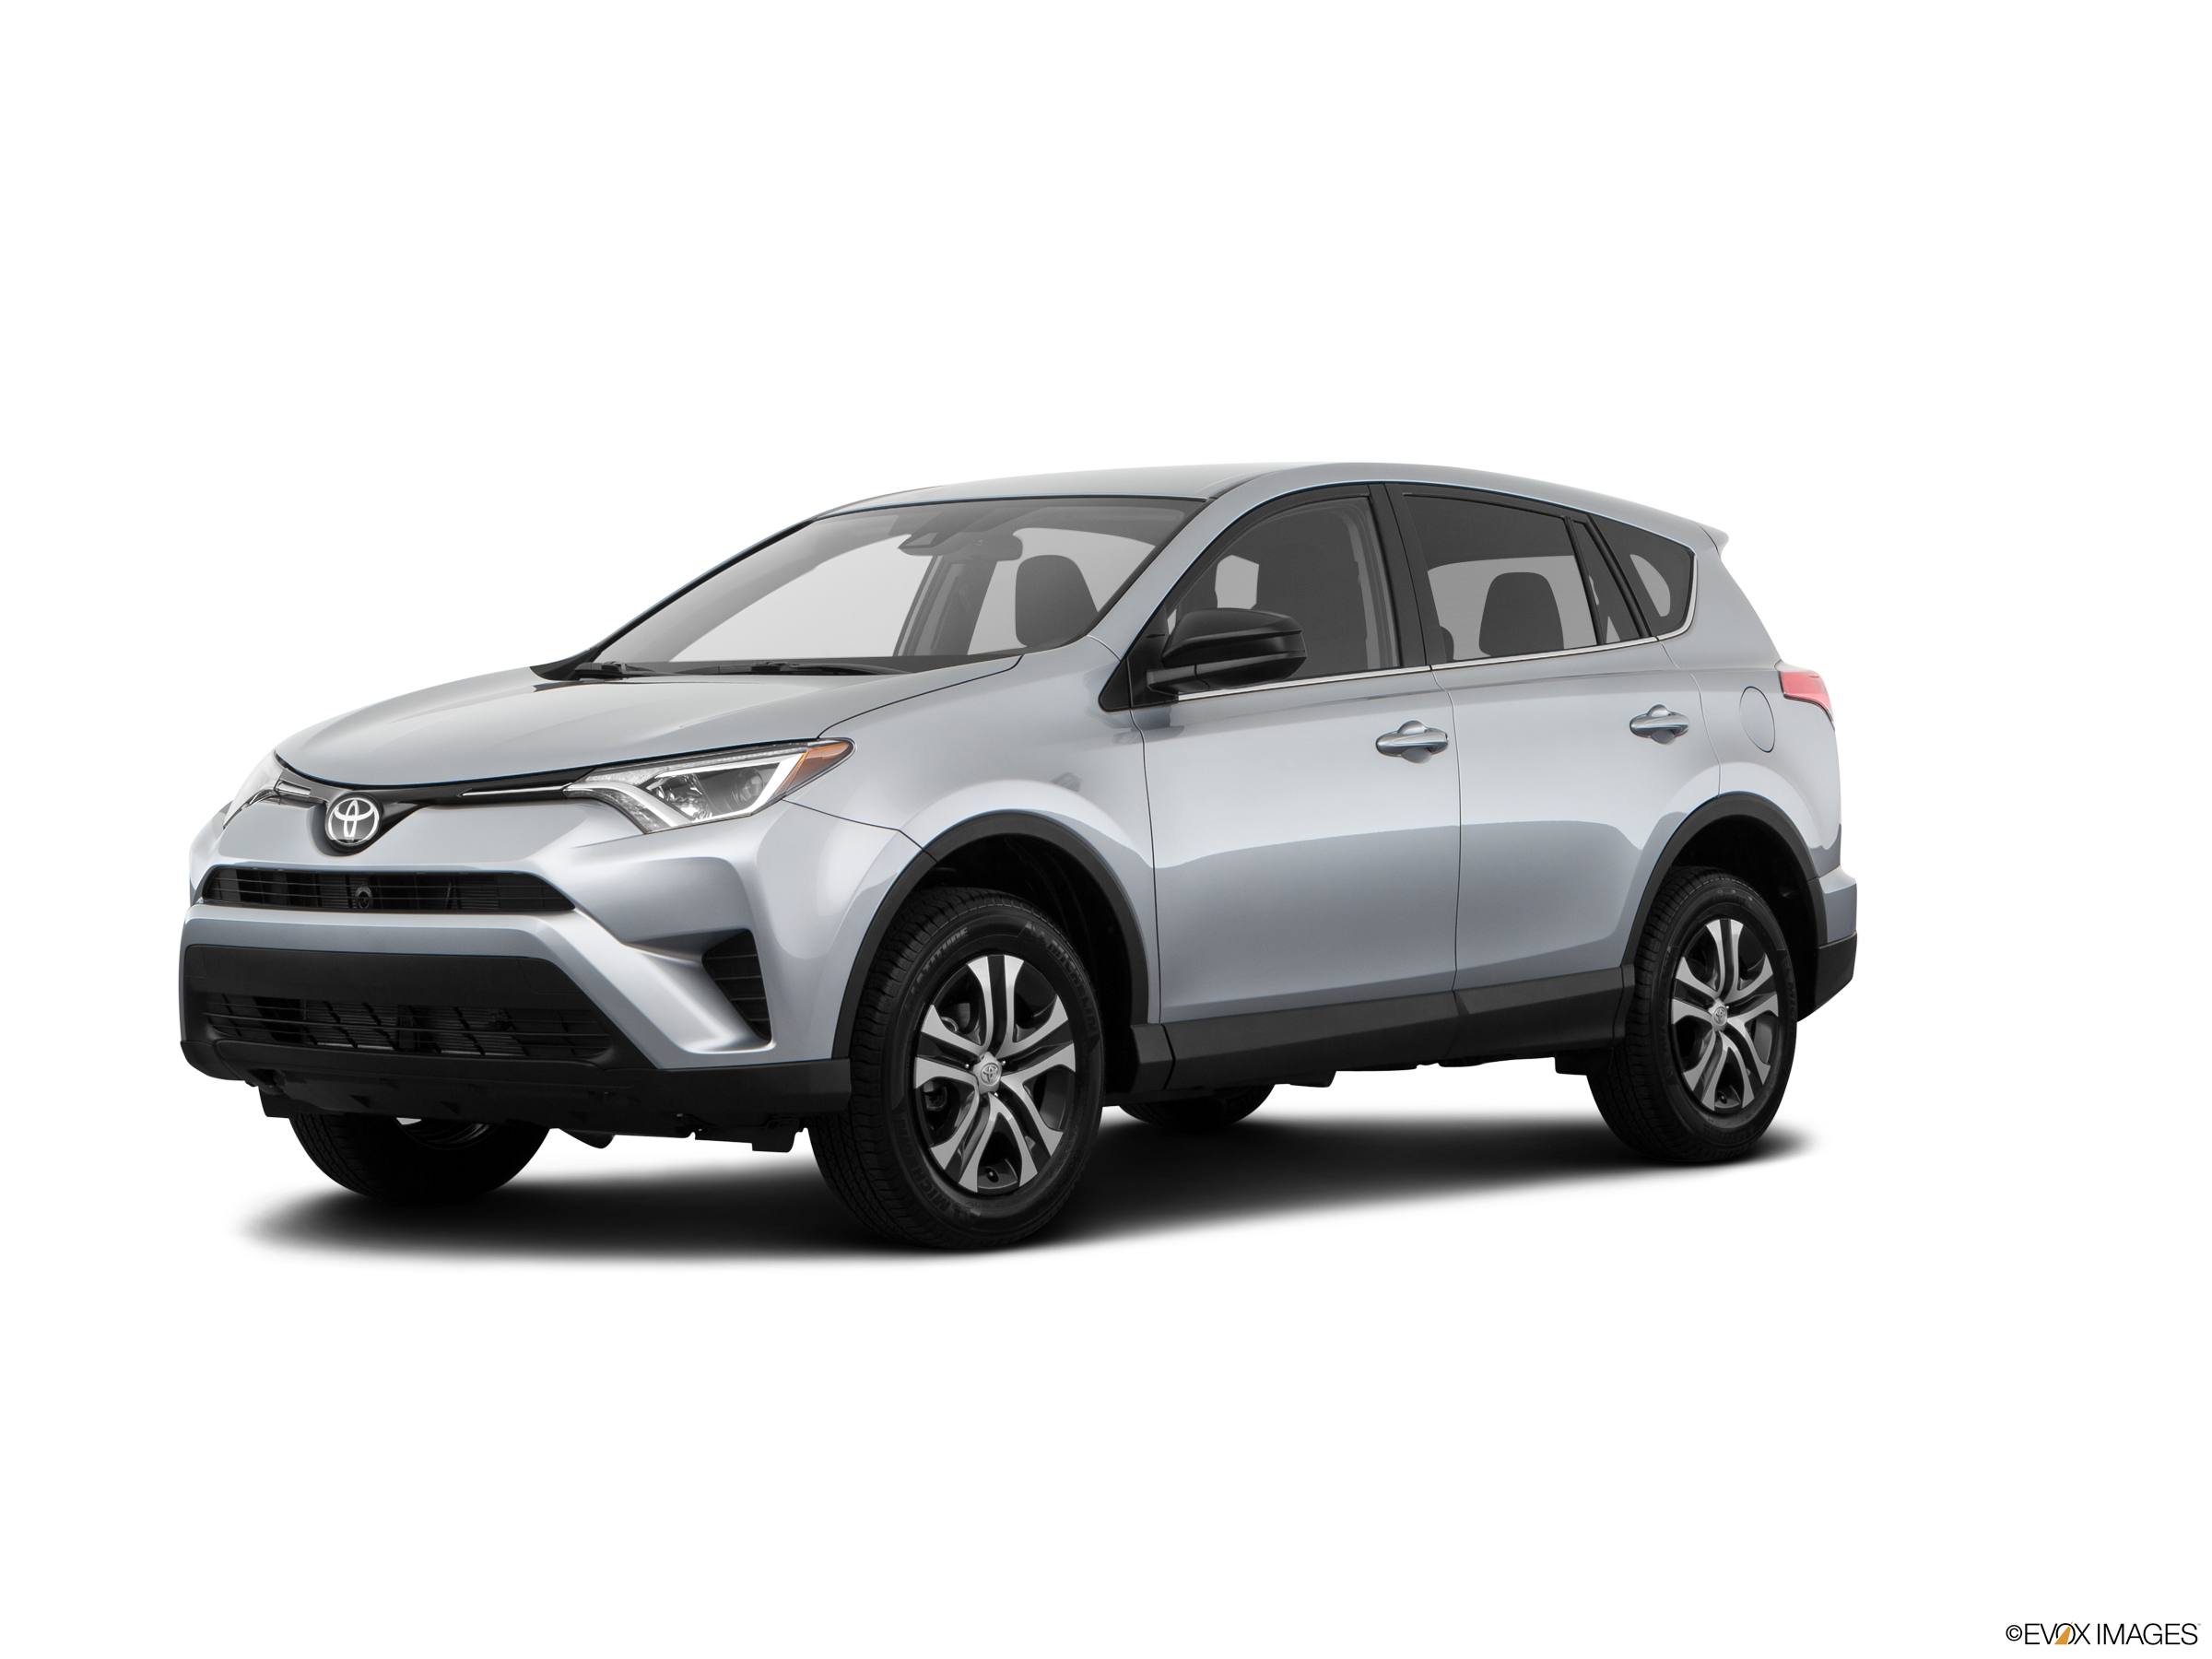 10 Best SUVs Under $25,000 - 2018 Toyota RAV4